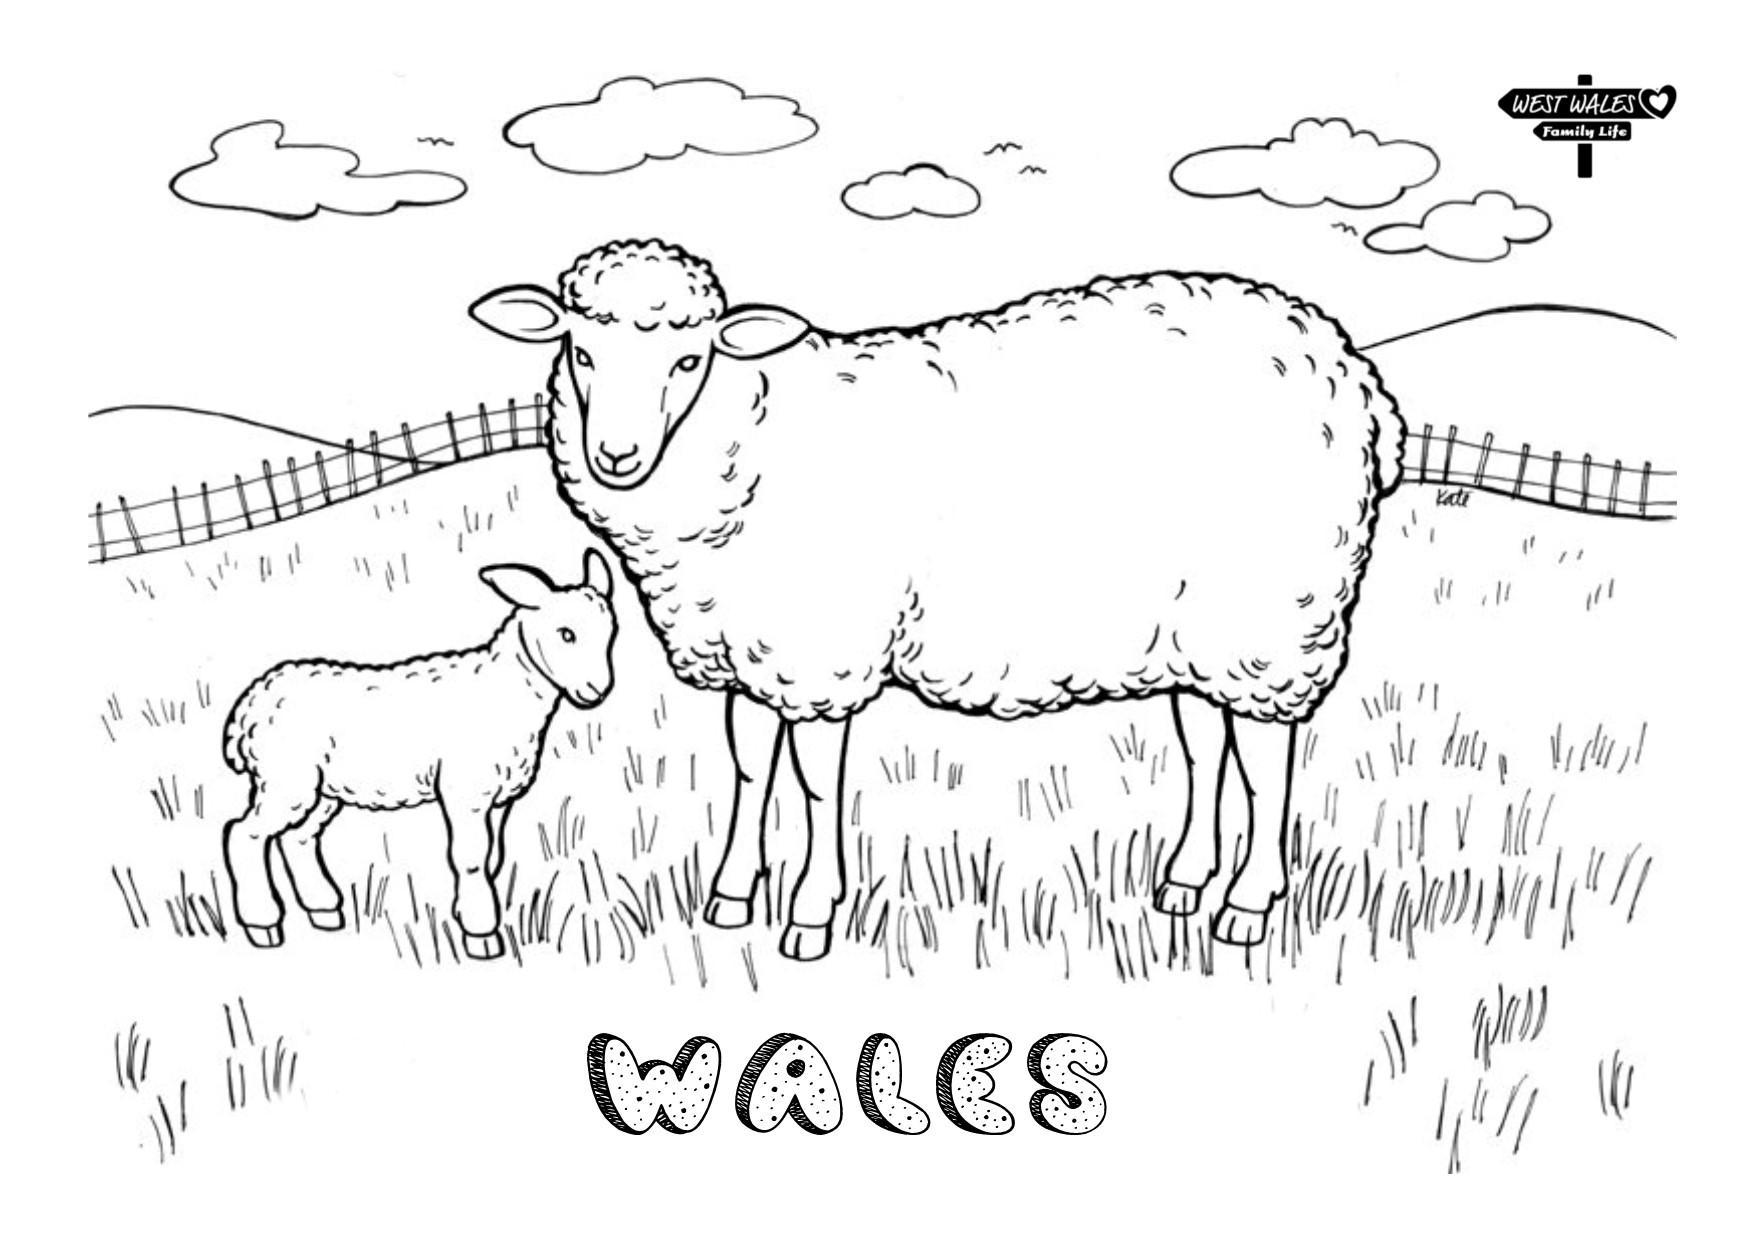 West Wales Family Life Printable St Davids Day Colouring Sheets for the Kids Page 4